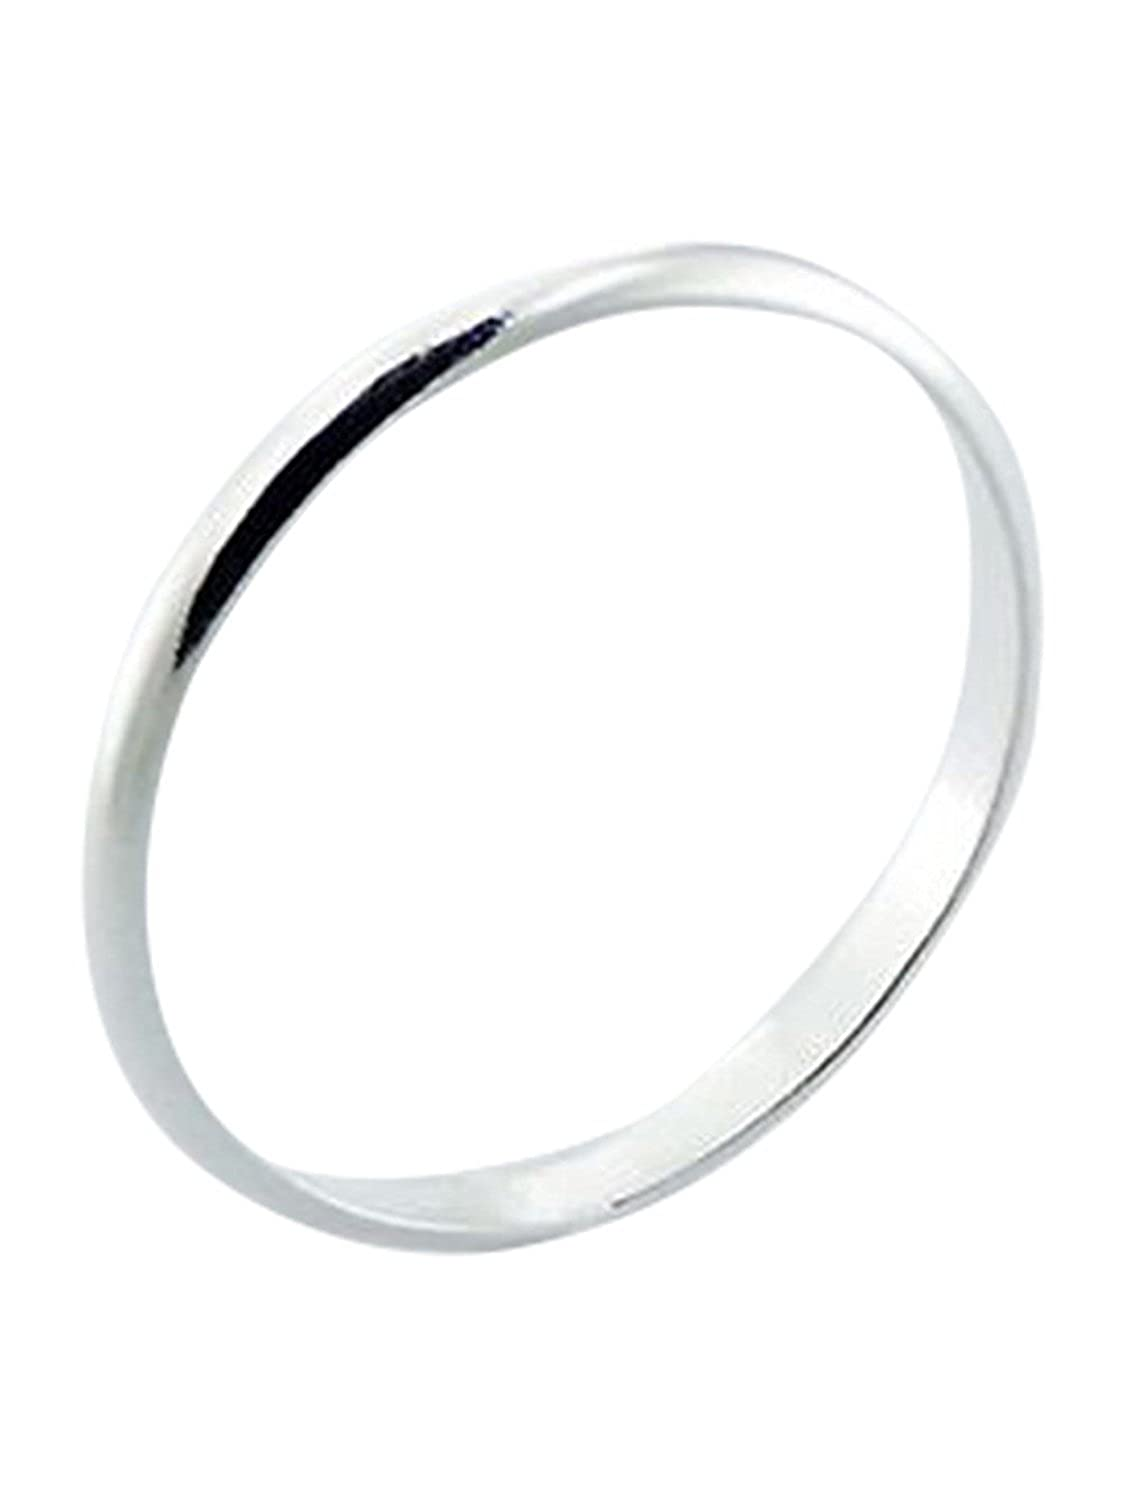 Sterling Silver Ring 2mm Band In Sizes G,H,I,J,K,L,M,N,O,P,Q,R,S,T,U,V,W,X,Y,Z by Amazon